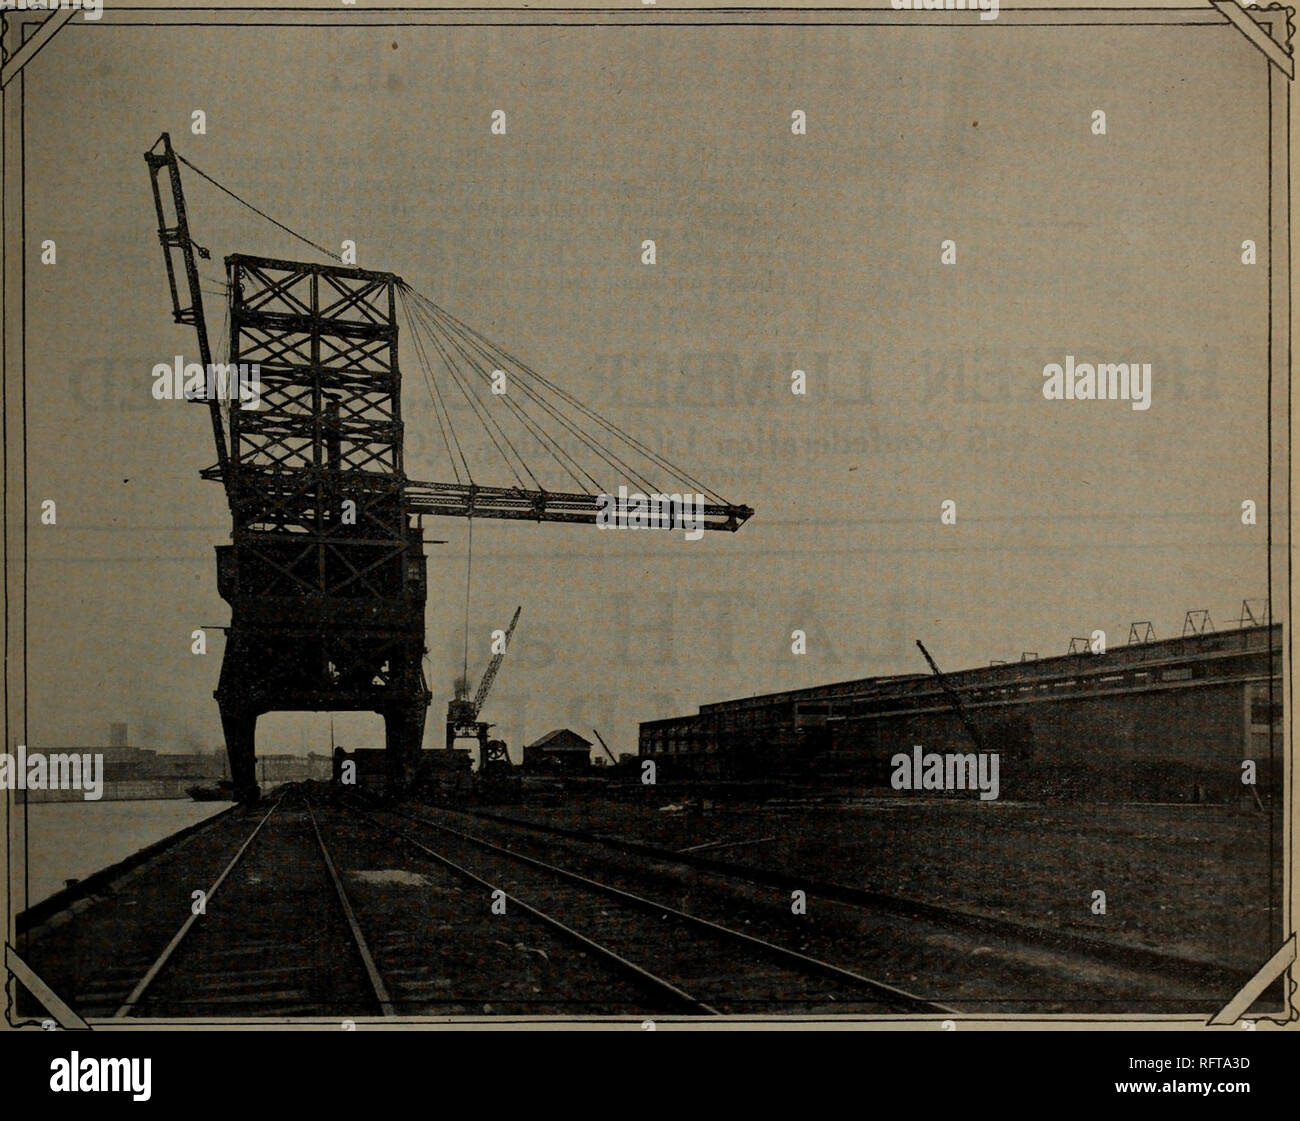 . Canadian forest industries July-December 1923. Lumbering; Forests and forestry; Forest products; Wood-pulp industry; Wood-using industries. CANADA LUMBERMAN HEAD OFFICE 512-513 Drummond Building MONTREAL, QUE.. View of our docks and mill, also gantry and locomotive cranes used in handling our heavy timbers We are Specialists in British Columbia Forest Products We Handle The Best in the West If you are interested in Western stock send us your inquiries. We can make quick shipments from our Montreal stock.. Please note that these images are extracted from scanned page images that may have been - Stock Image